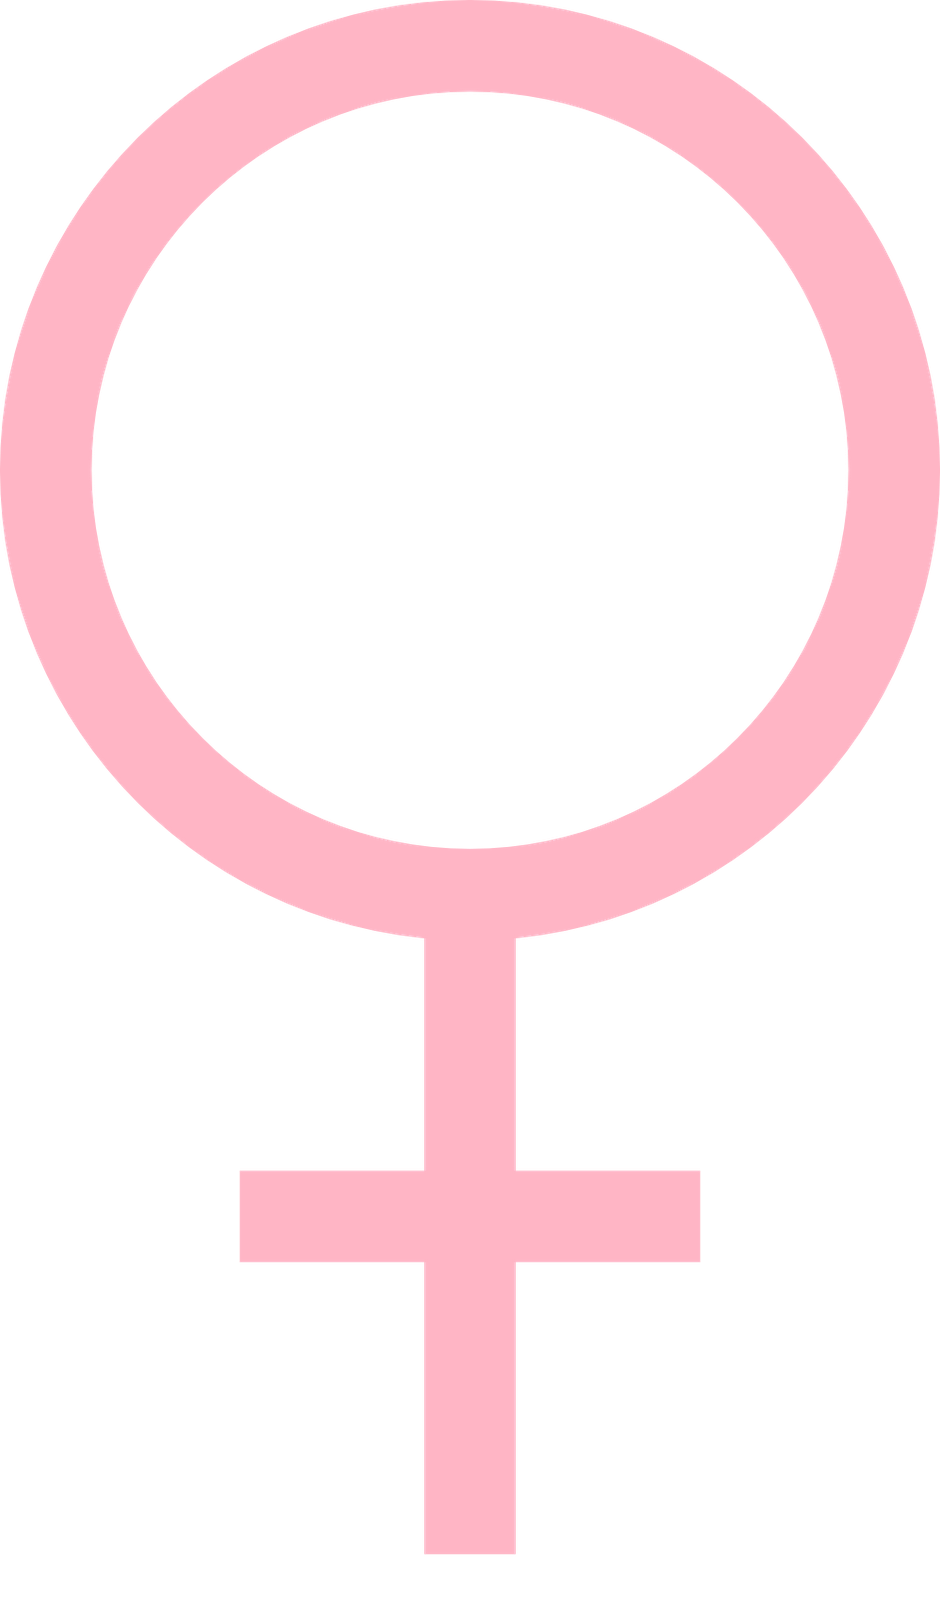 Free Female Symbol, Download Free Clip Art, Free Clip Art on Clipart.